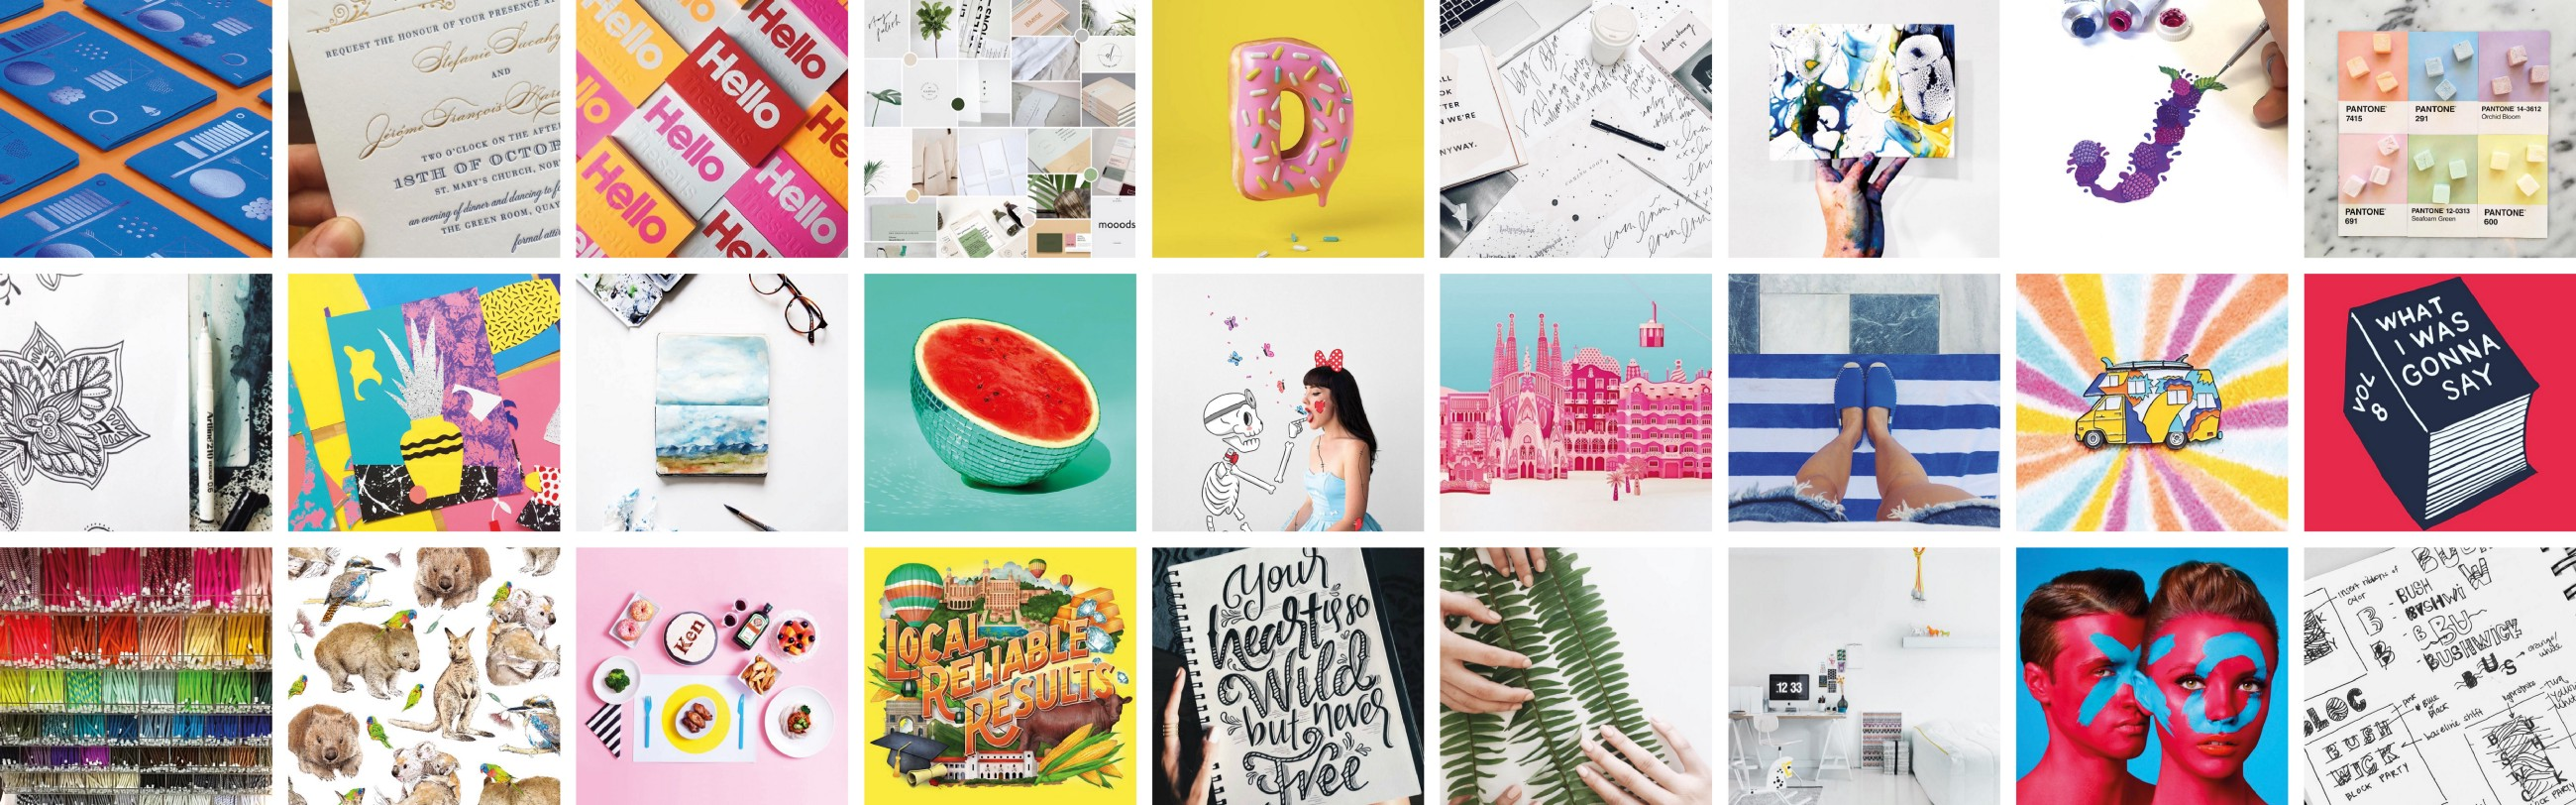 ea8ca4534d707a 60 of the Best Graphic Designers to Follow on Behance